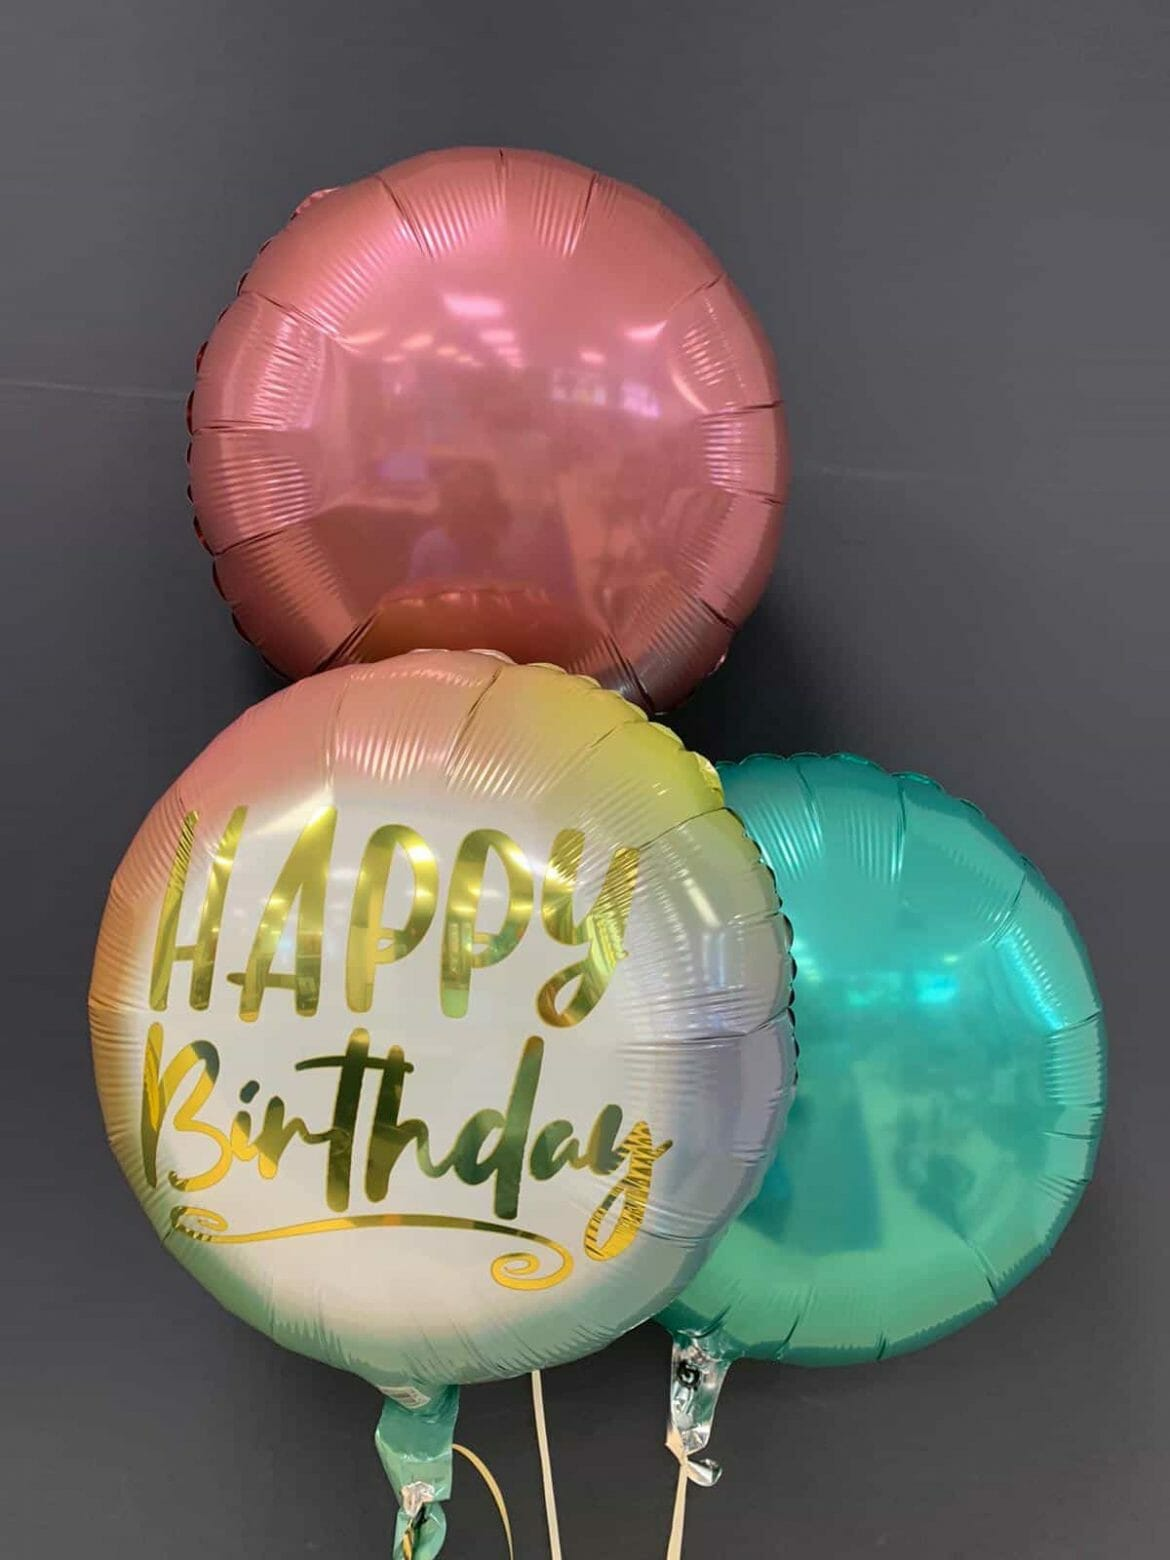 Happy Birthday € 5,50 <br> Dekoballons je € 4,50 1